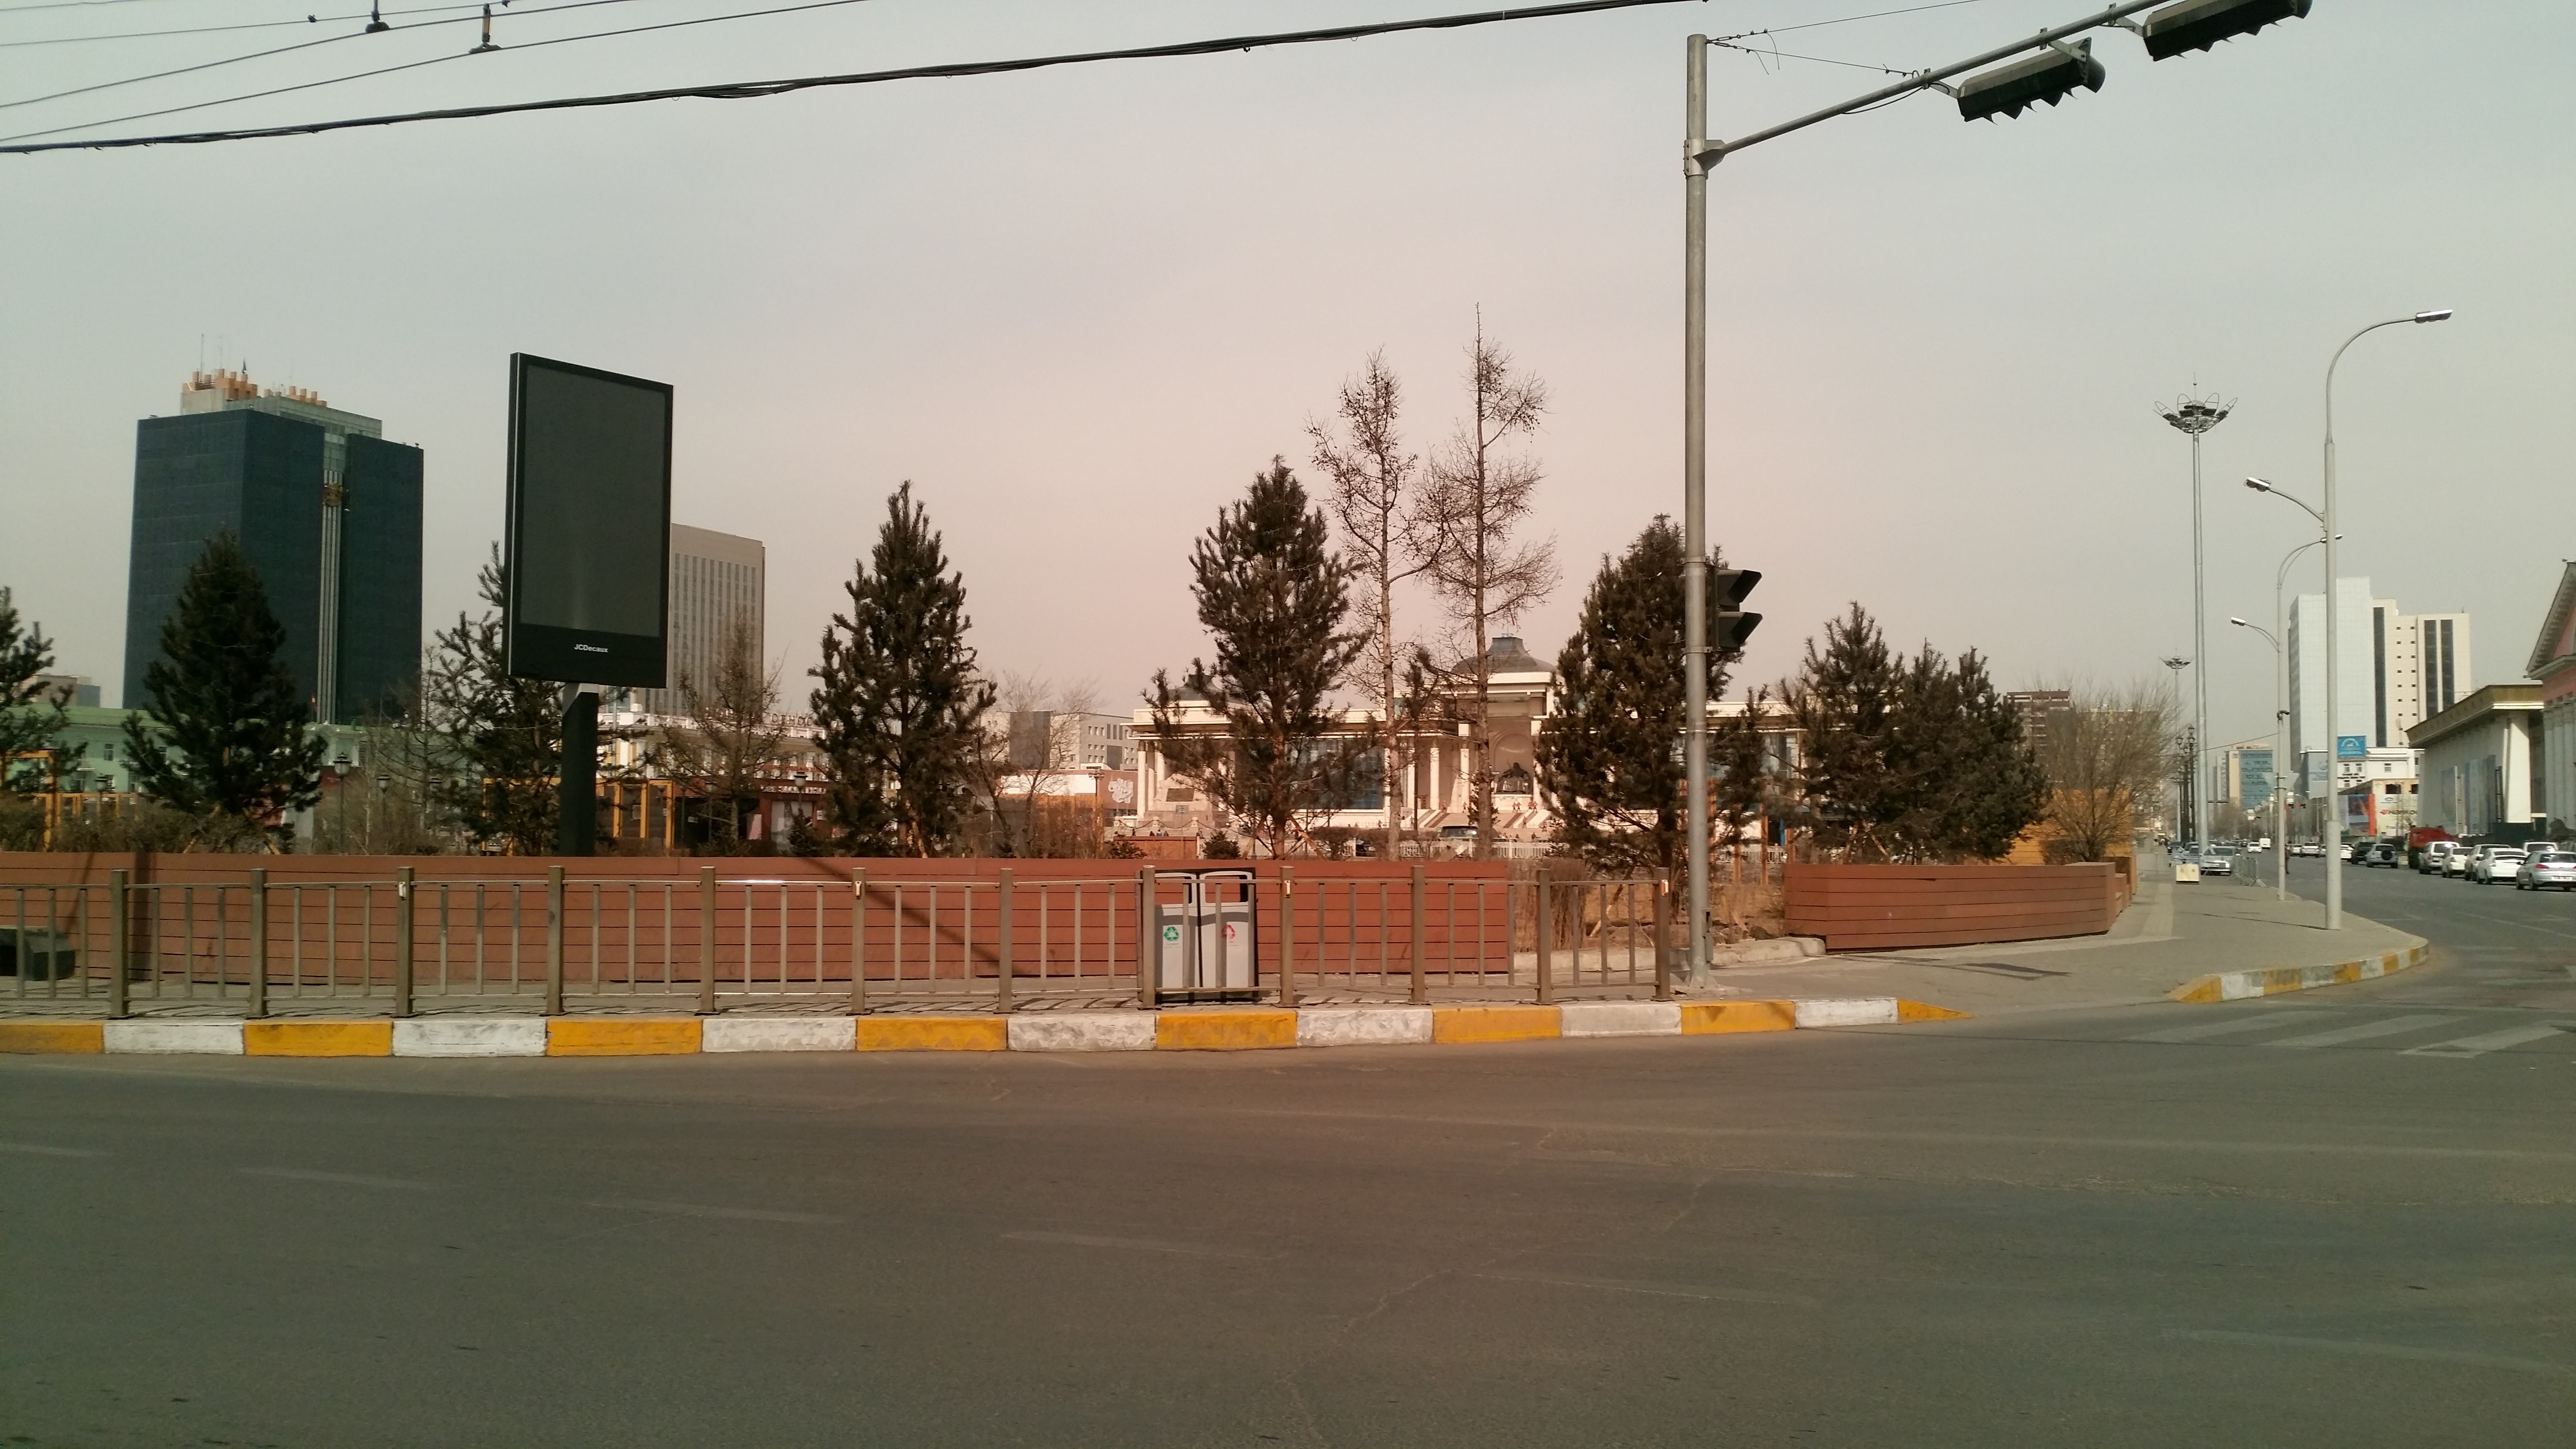 Of mongolia today tomorrow and the development bank of mongolia s - City Outskirts